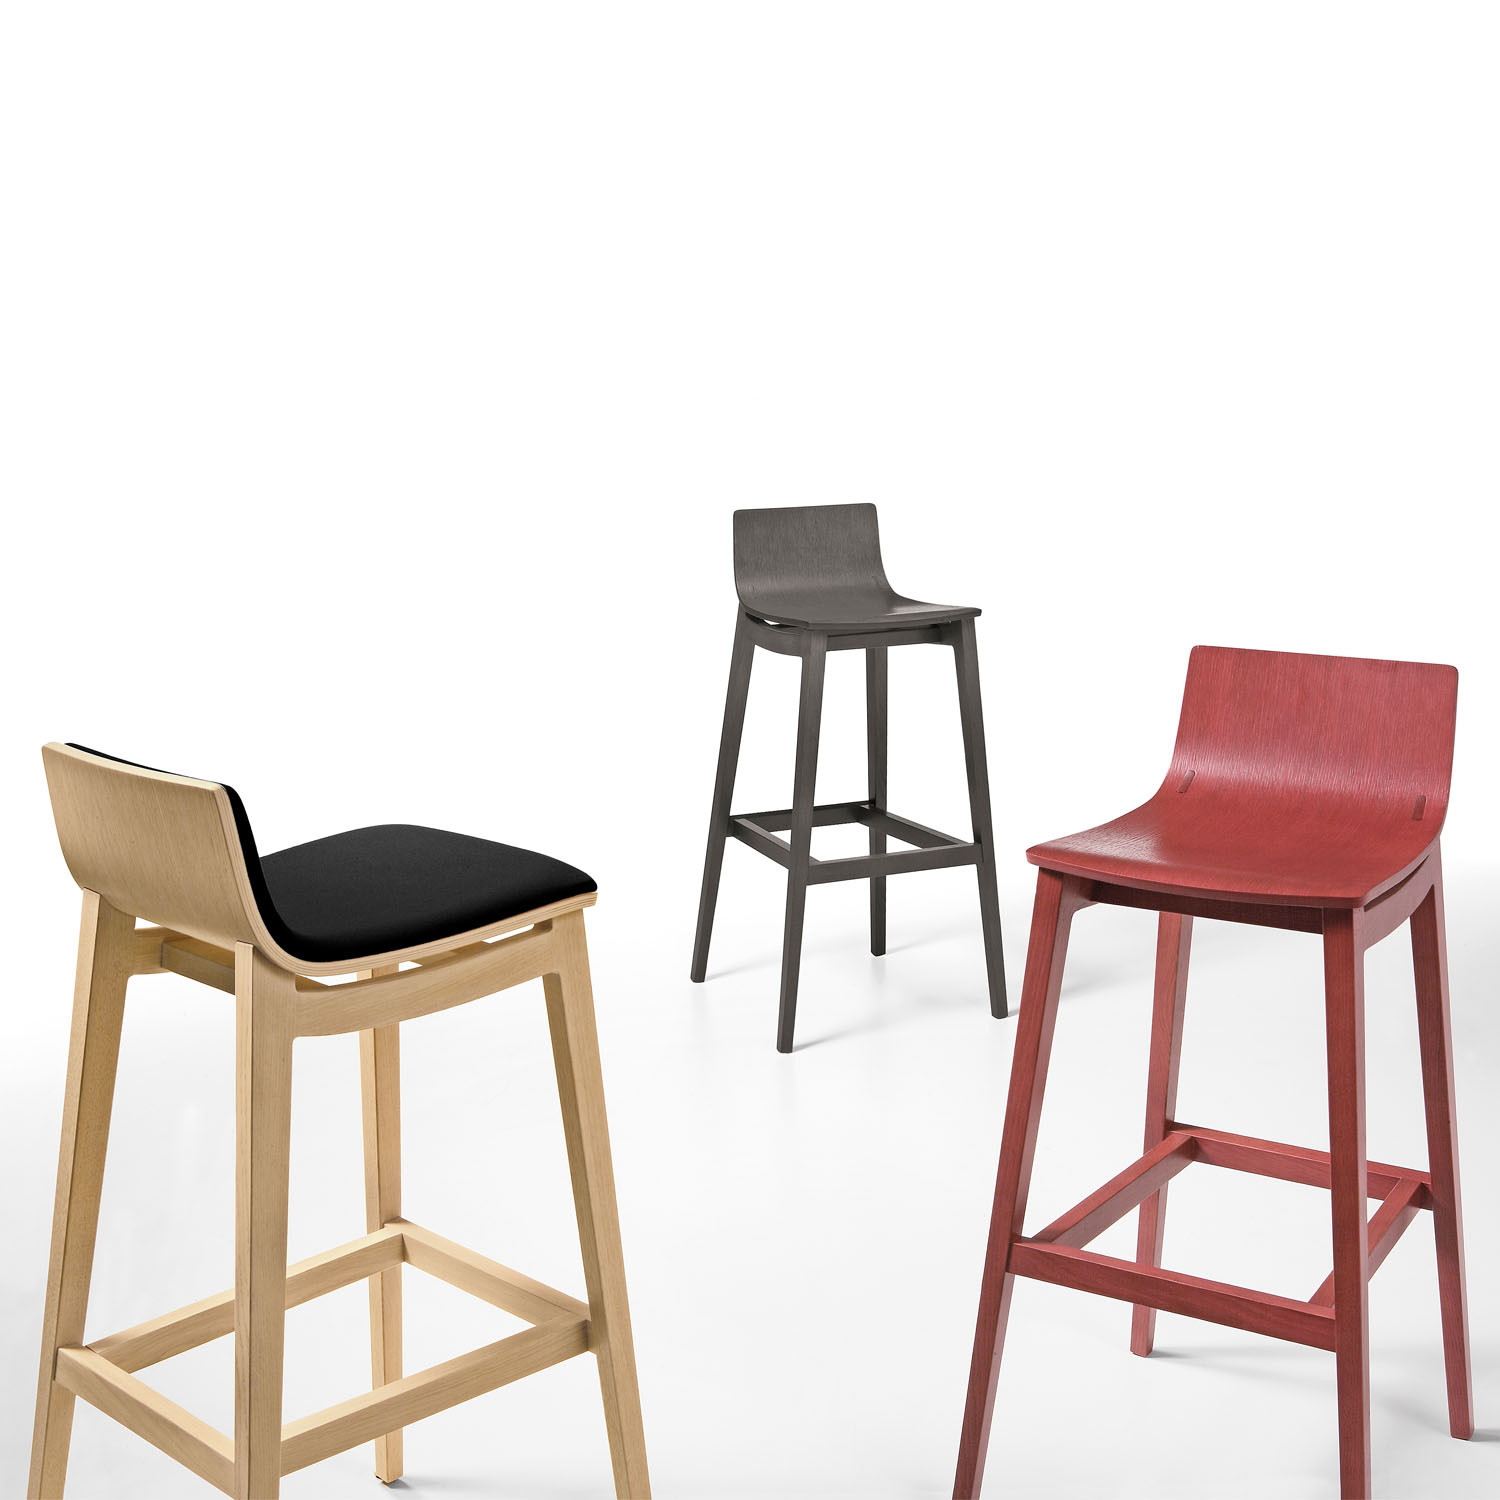 Connection Emma Bar Stools